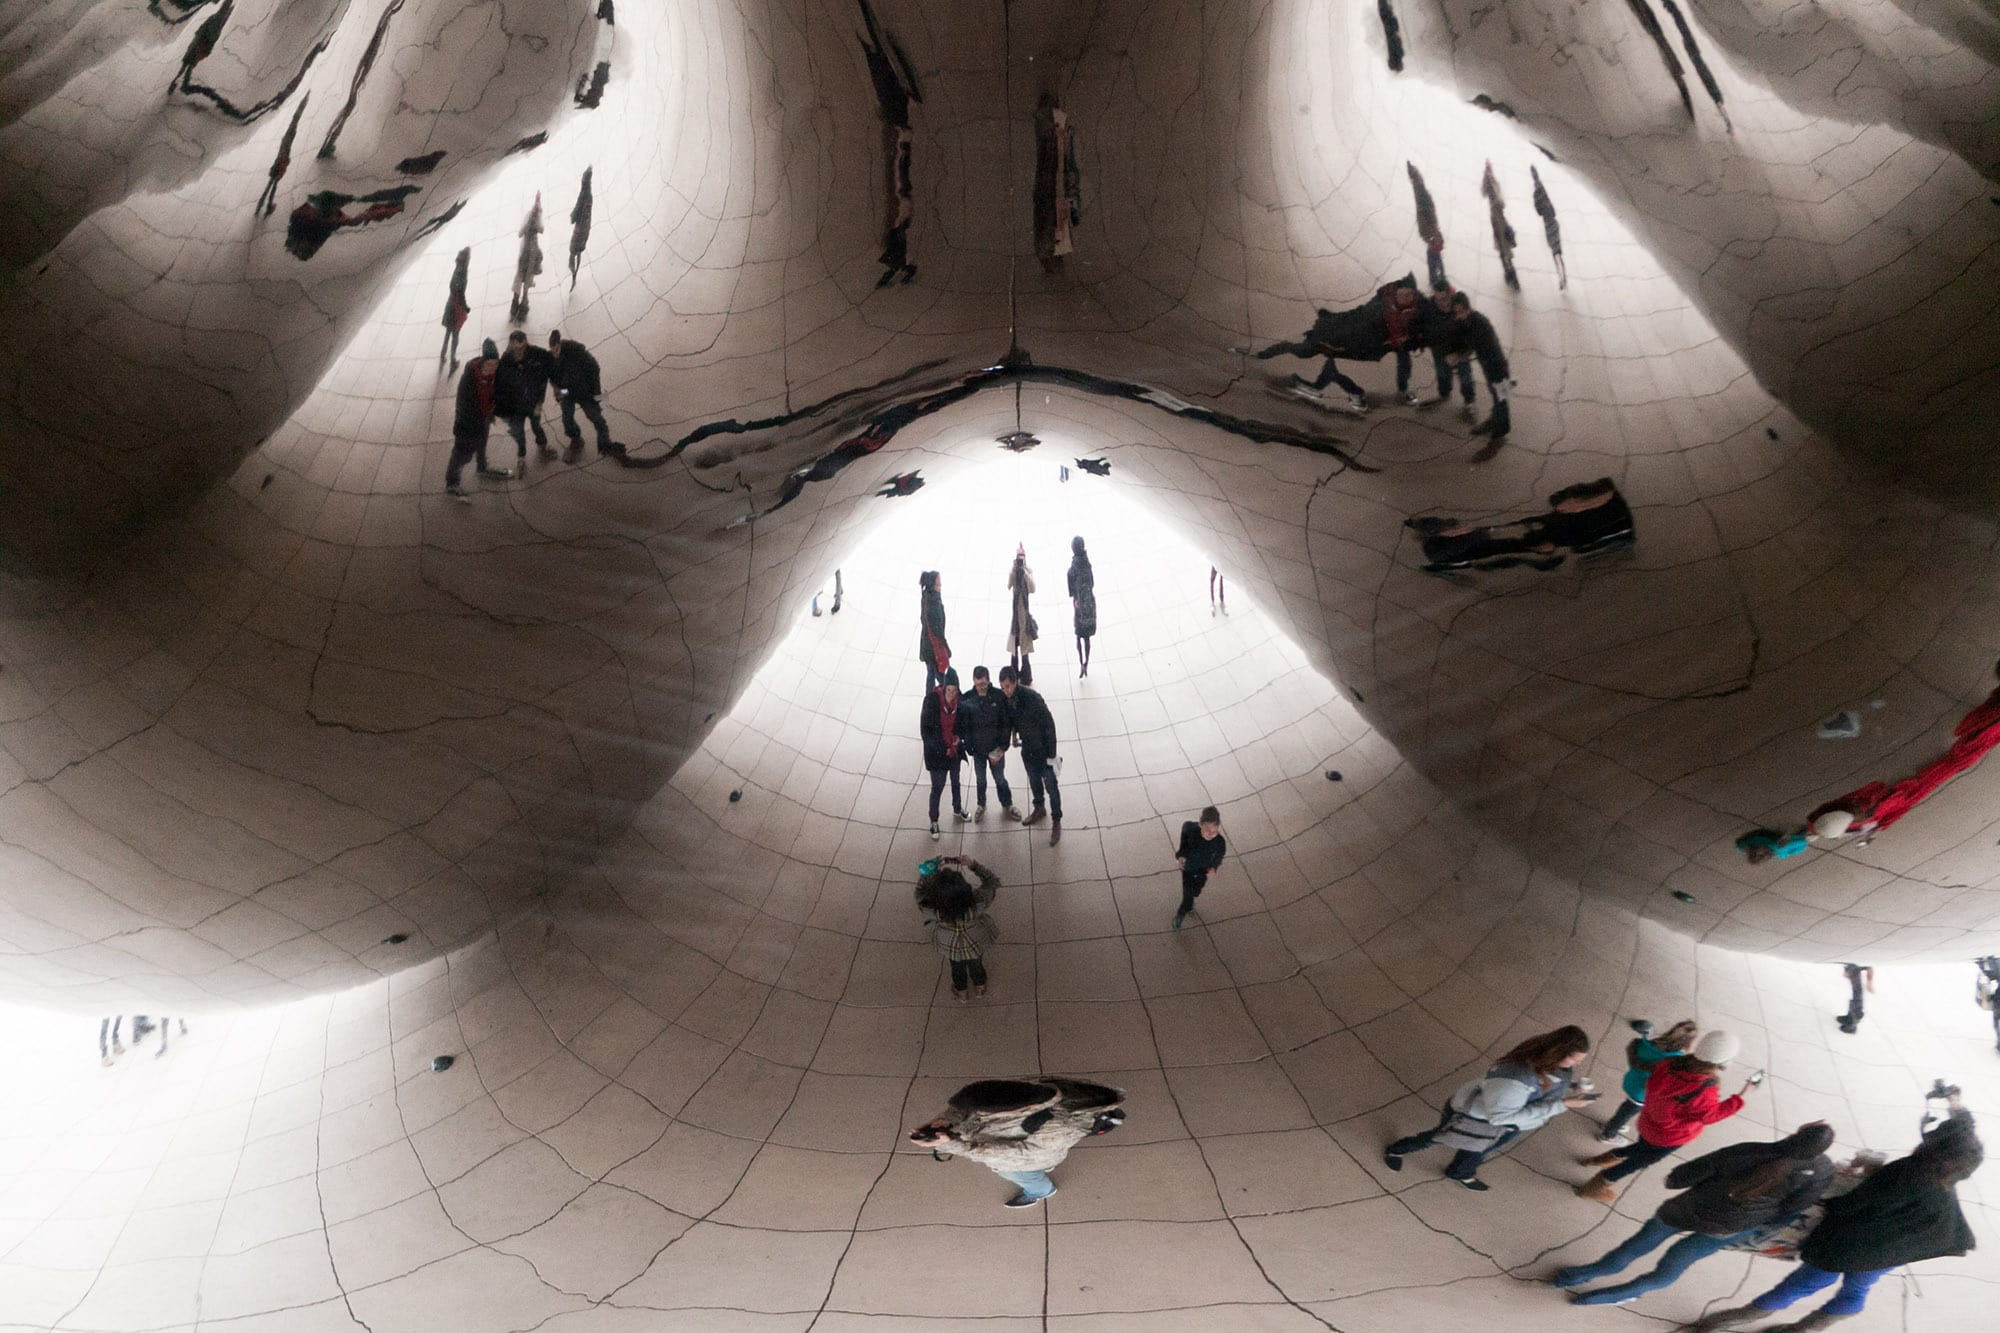 Cloud Gate - The Bean - in Chicago, Illinois